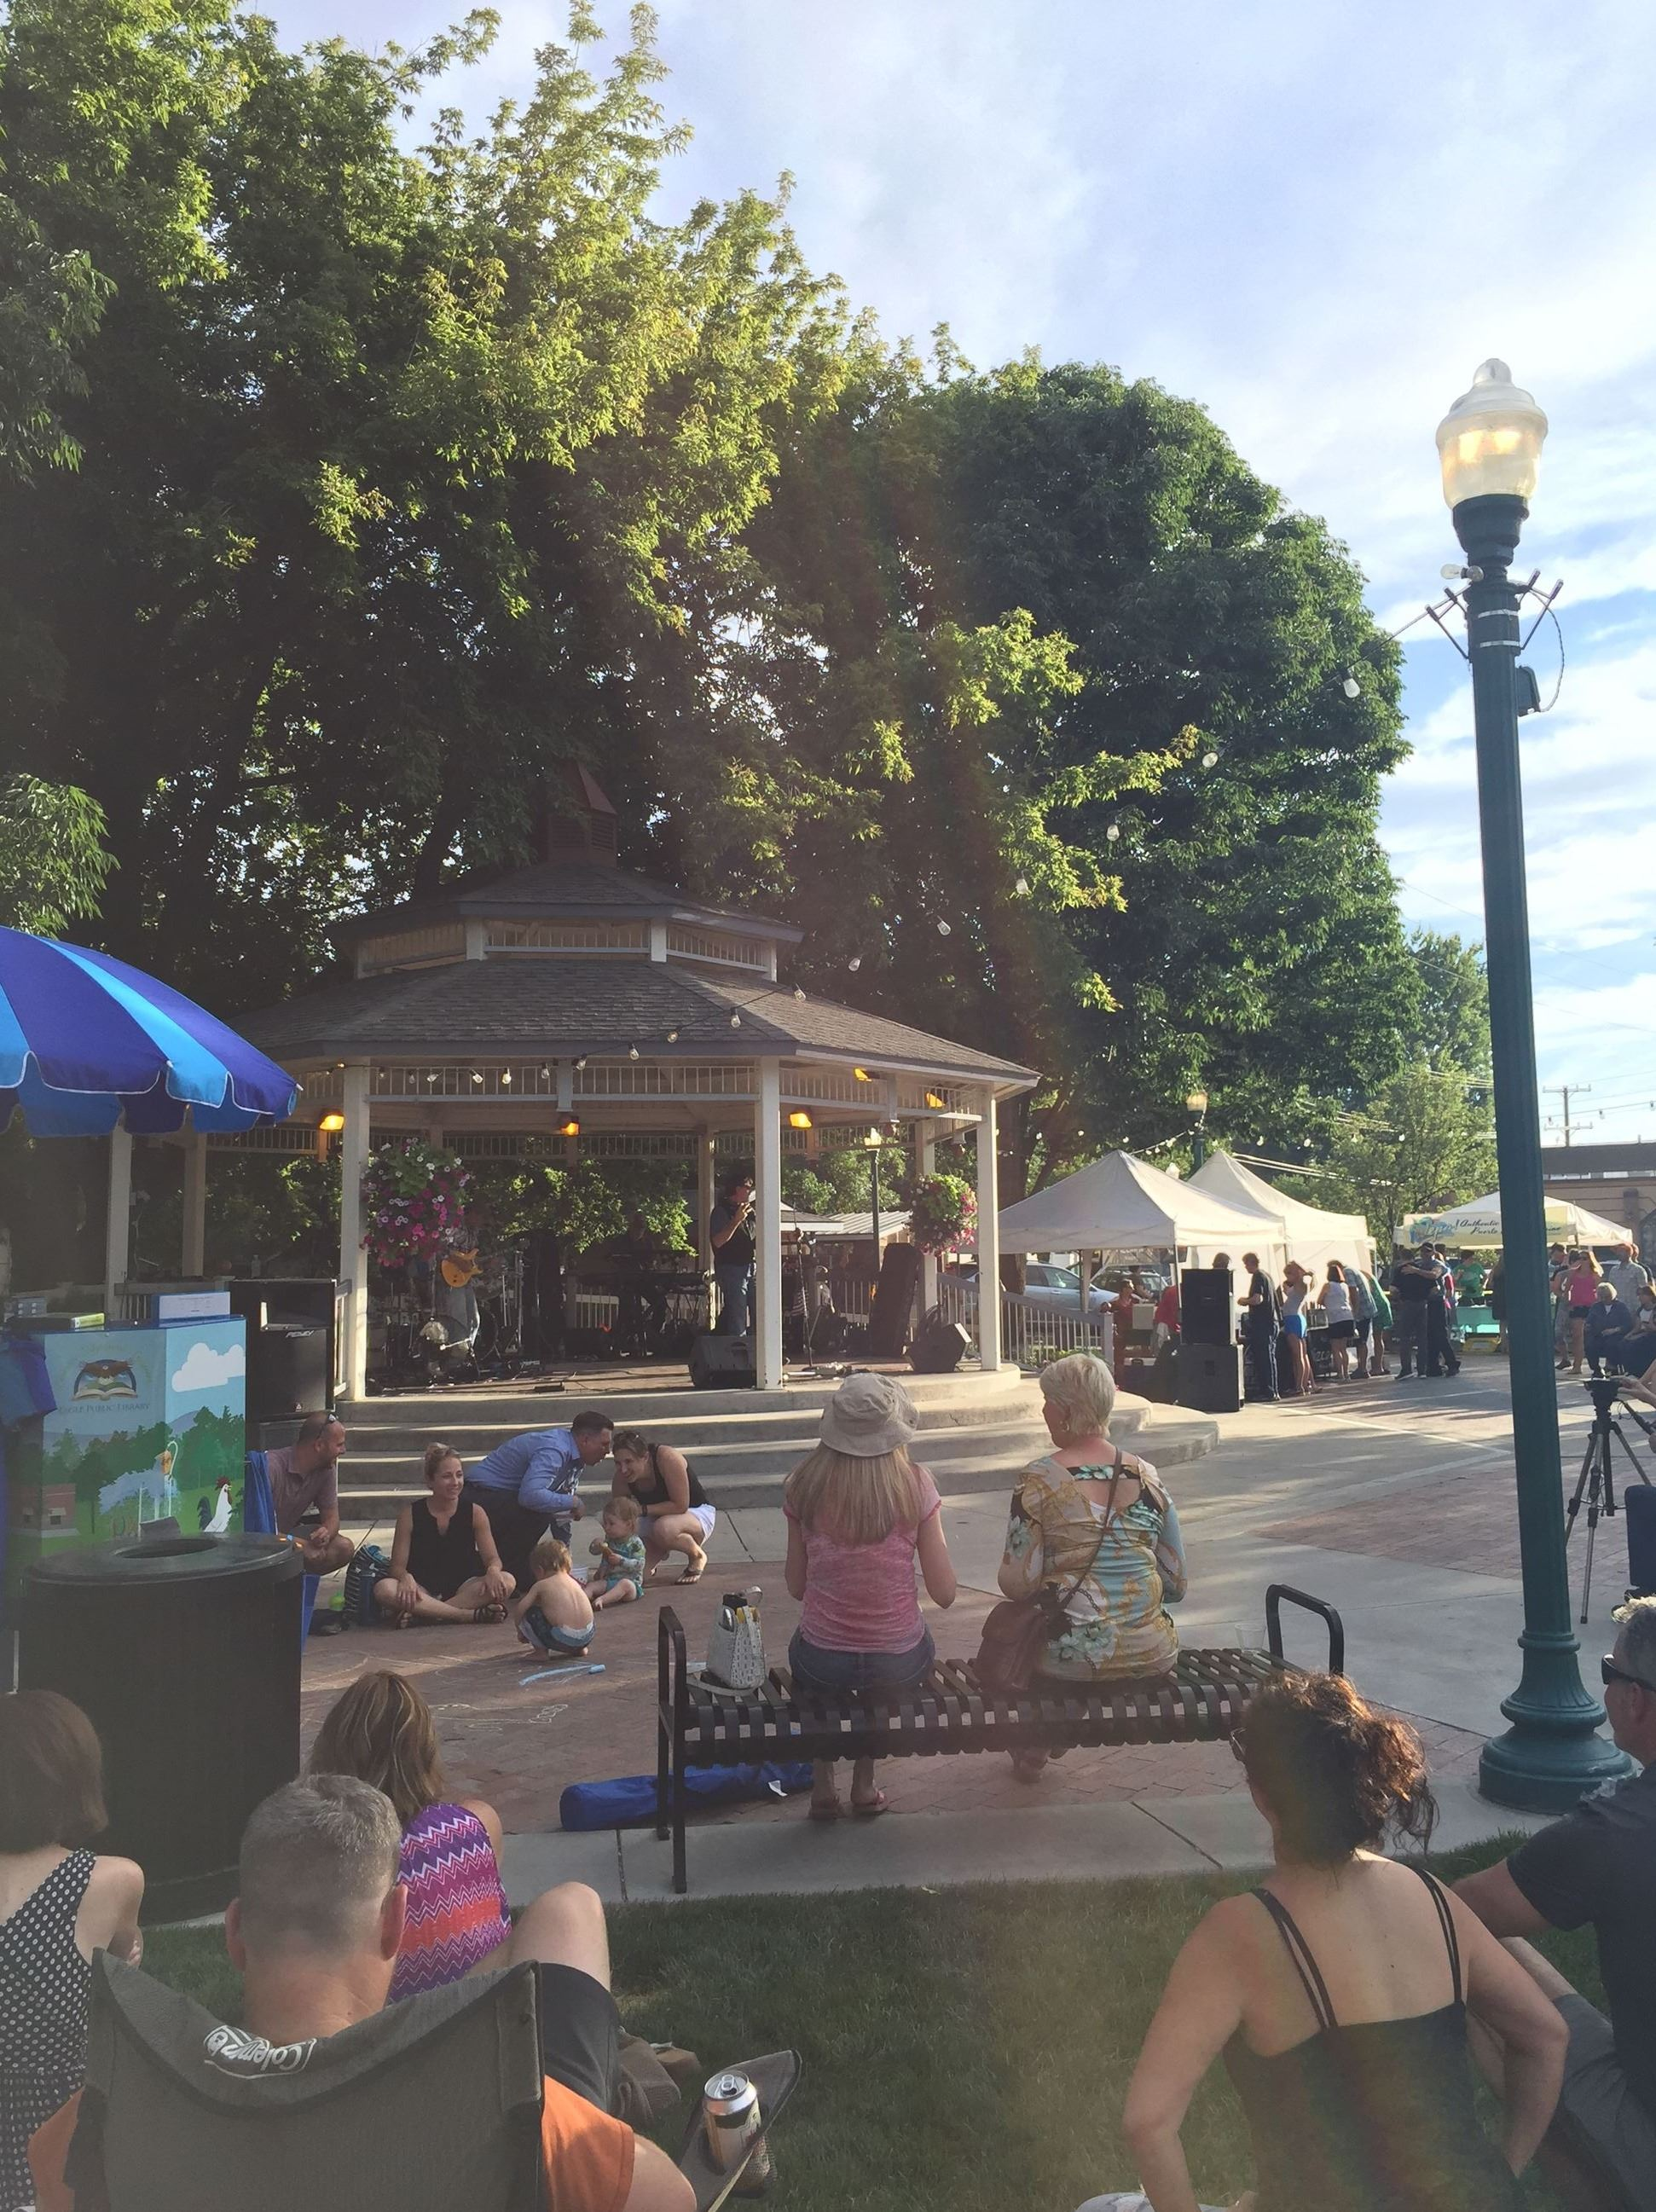 People watching a concert at Heritage Park during the Gazebo Concert Series.